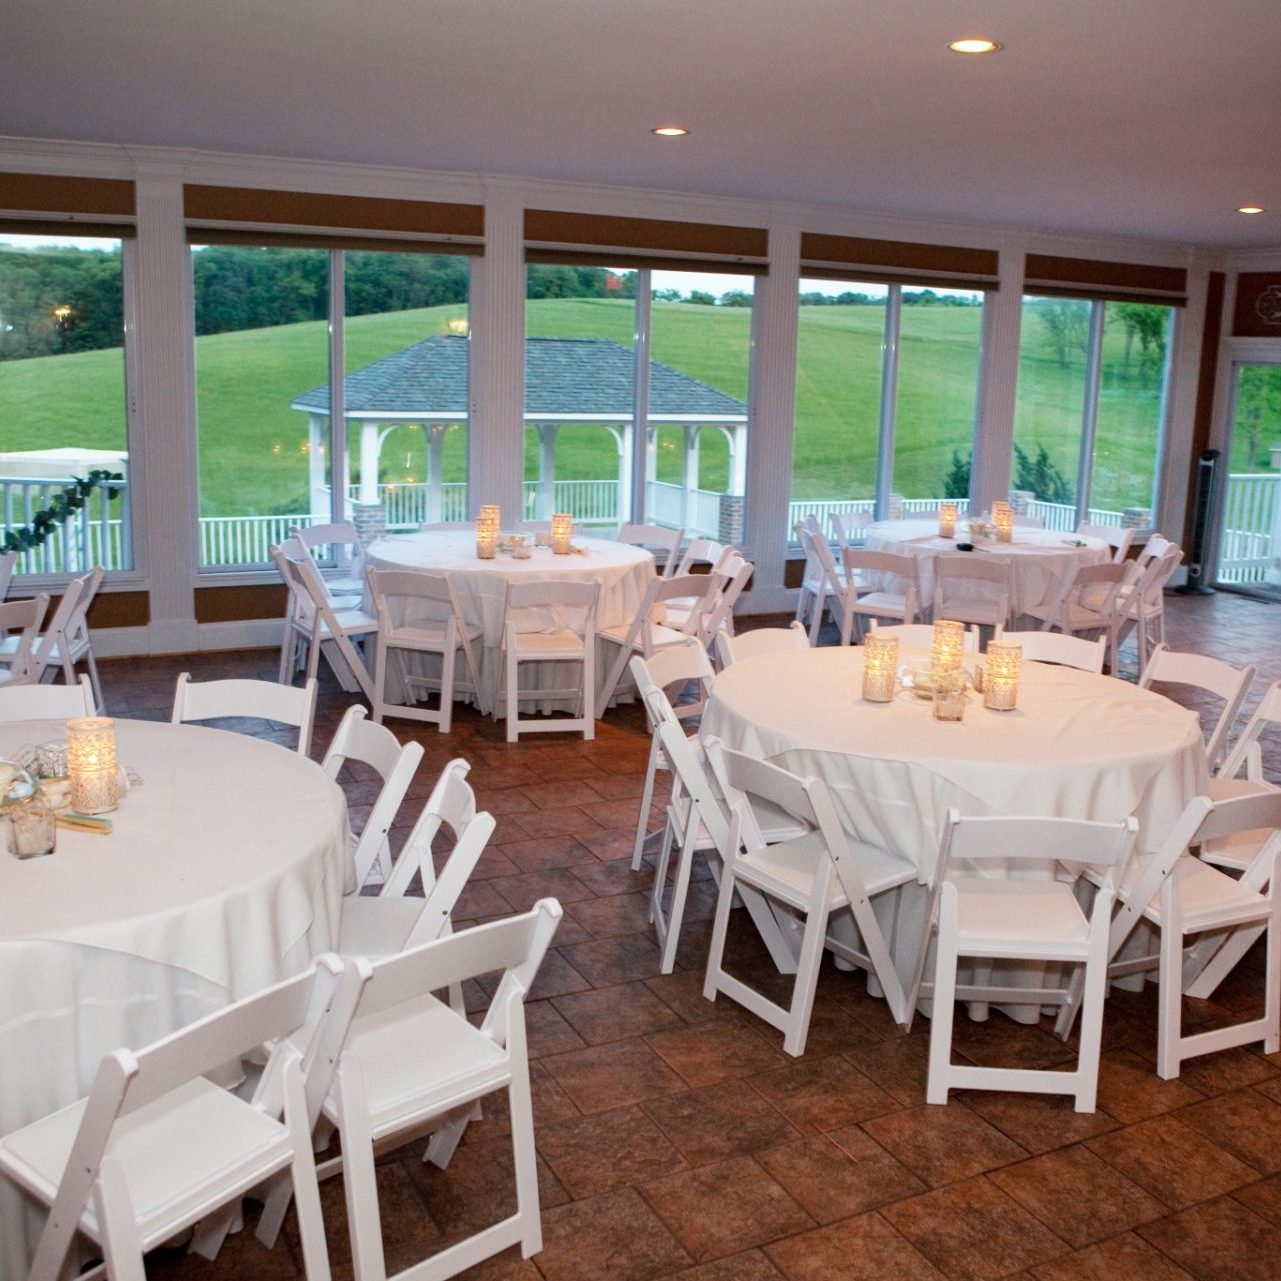 Reception venue in Maryland with plenty of natural light and seating for 200 guests